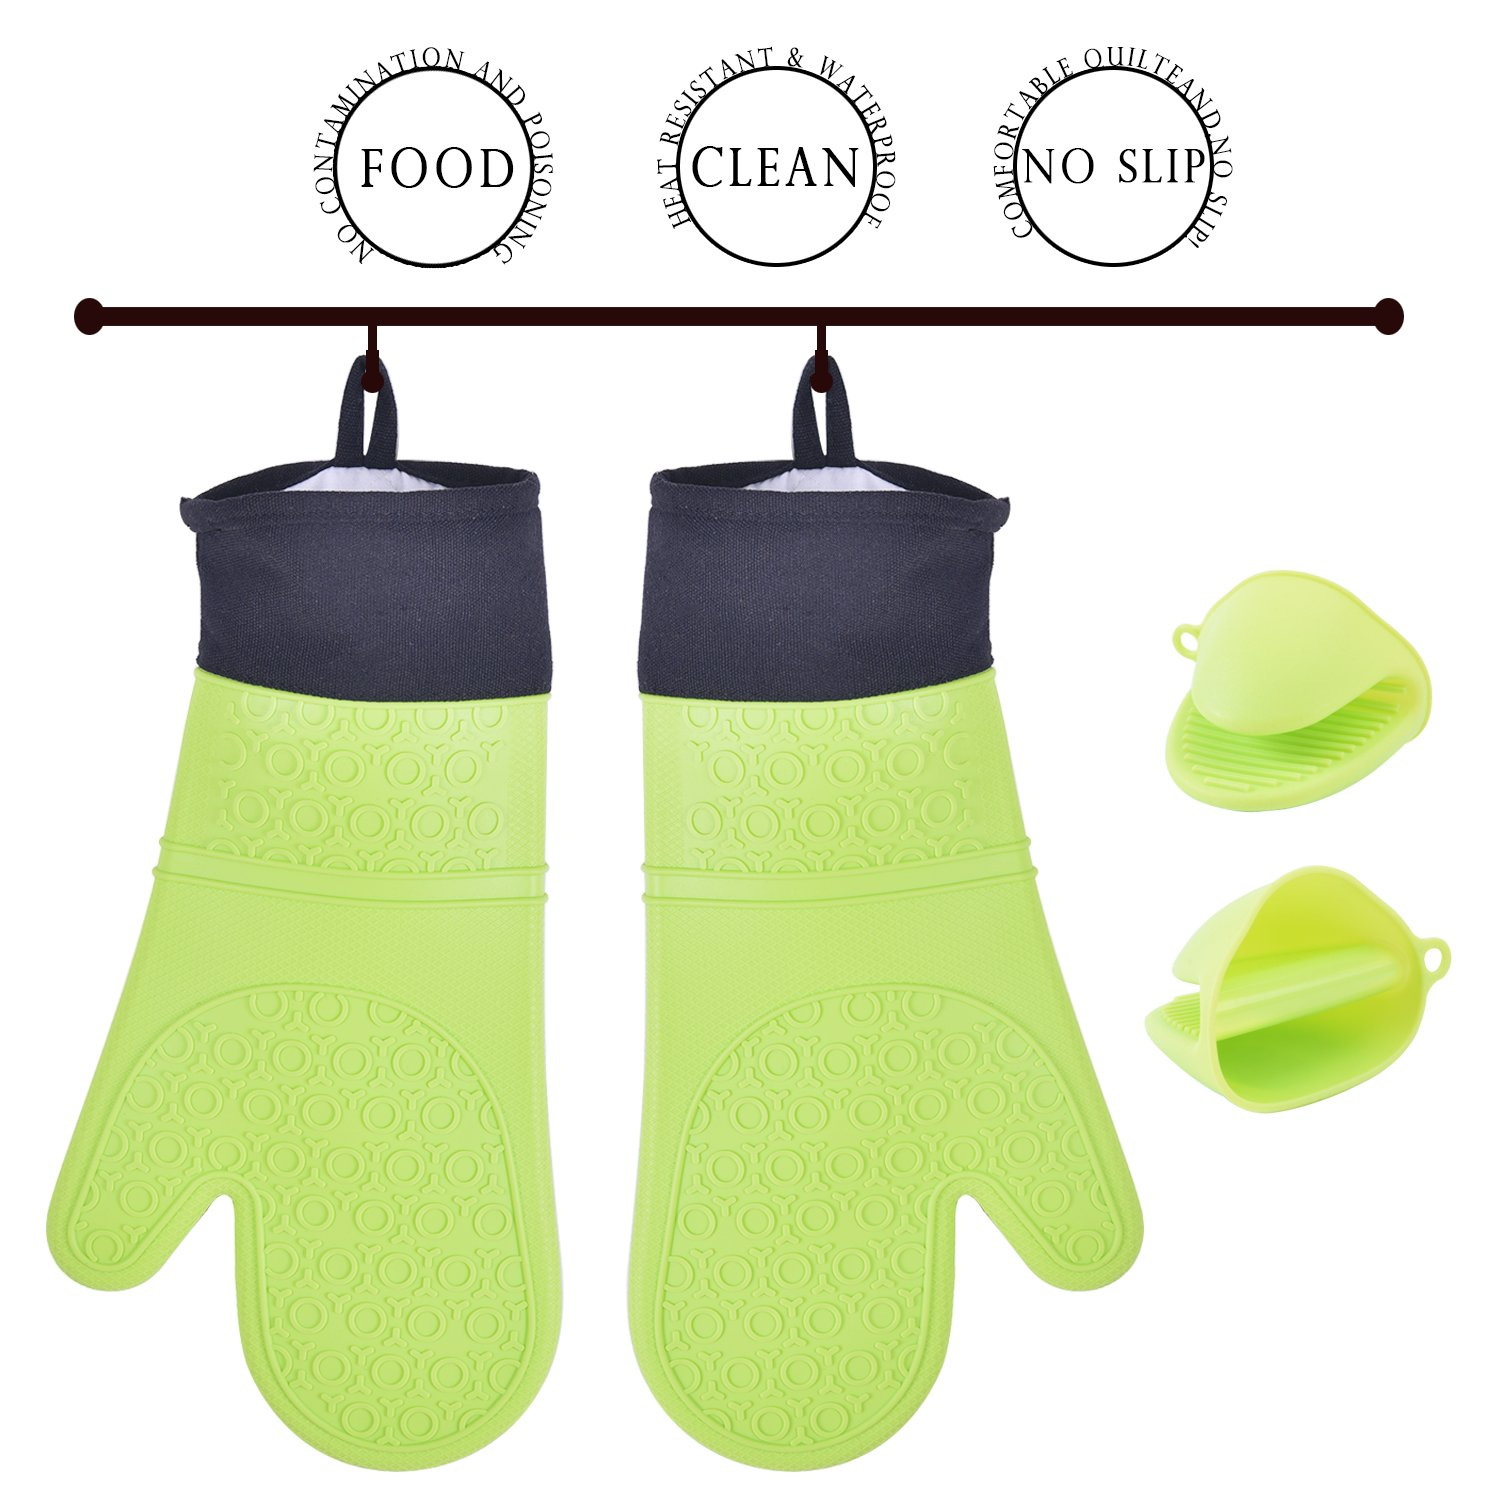 Barbecue Gloves, CrystalMX 4-Pack Waterproof Extra Long Quilted Cotton Lining Silicone Professional Heat Resistant Oven Mitts Potholder Gloves for Kitchen & Barbecue, (2 Large & 2 Mini), Green